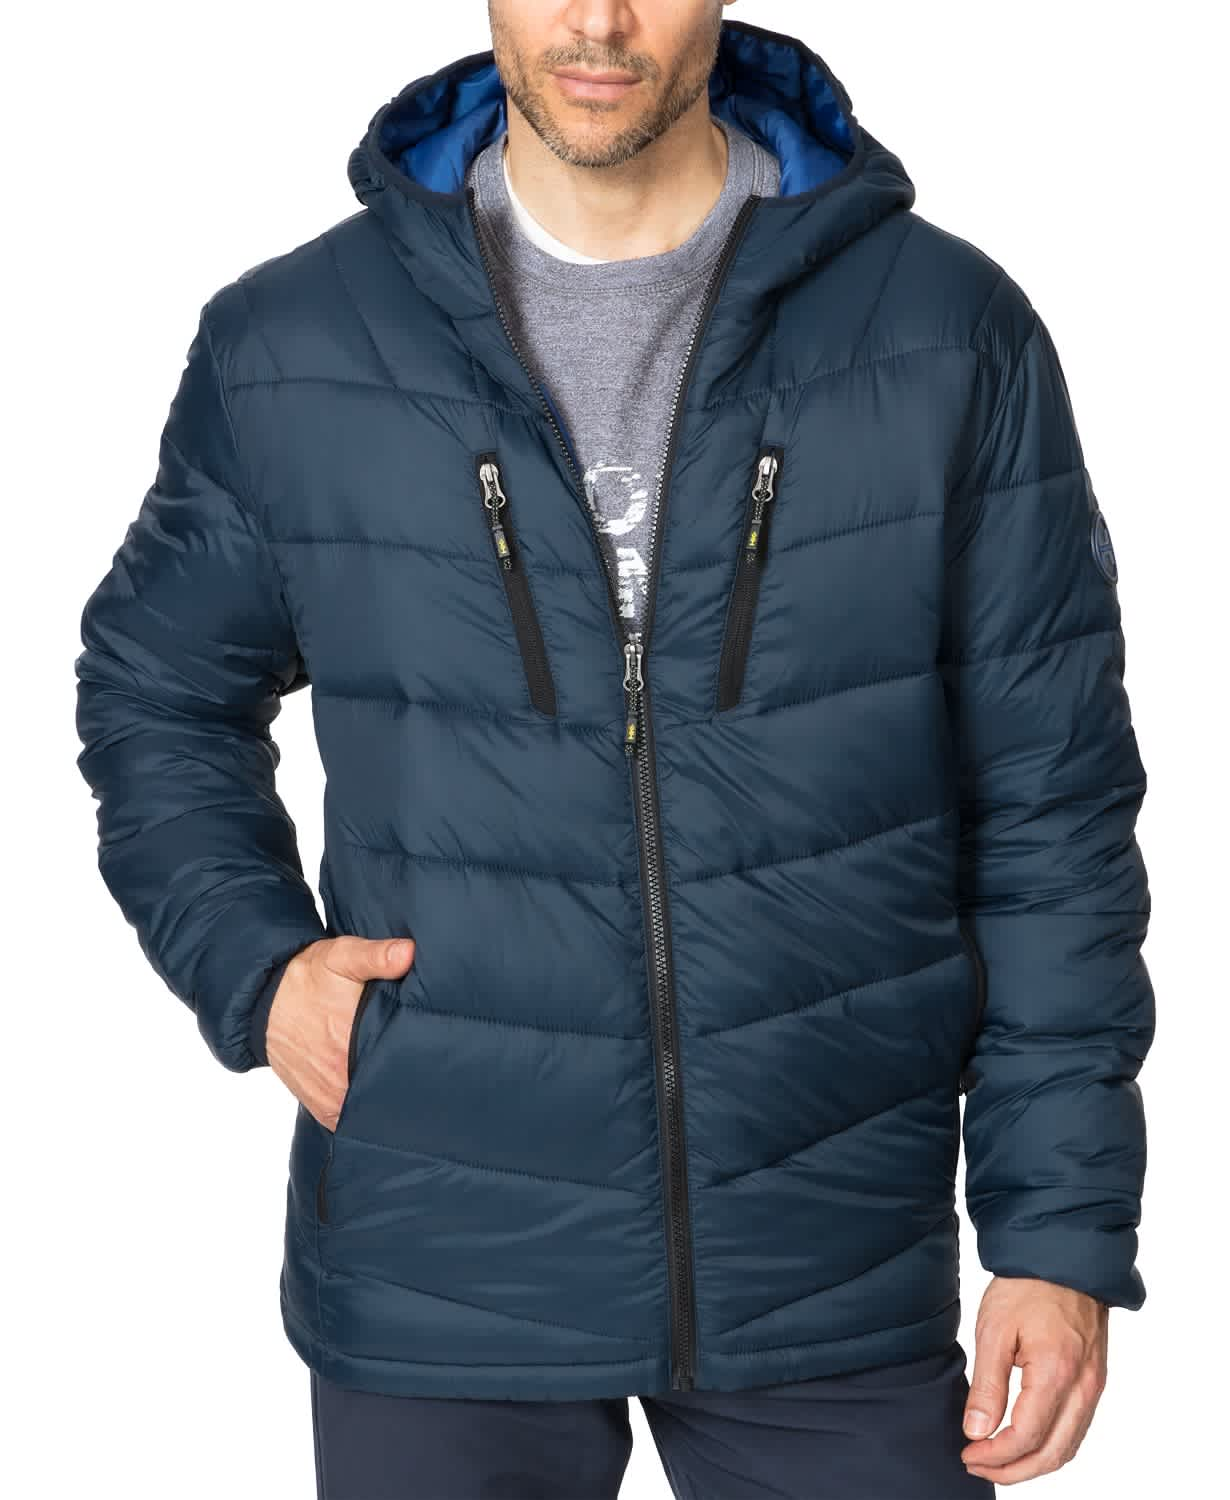 Hawke & Co. Men's The Chevron Packable Down Jacket